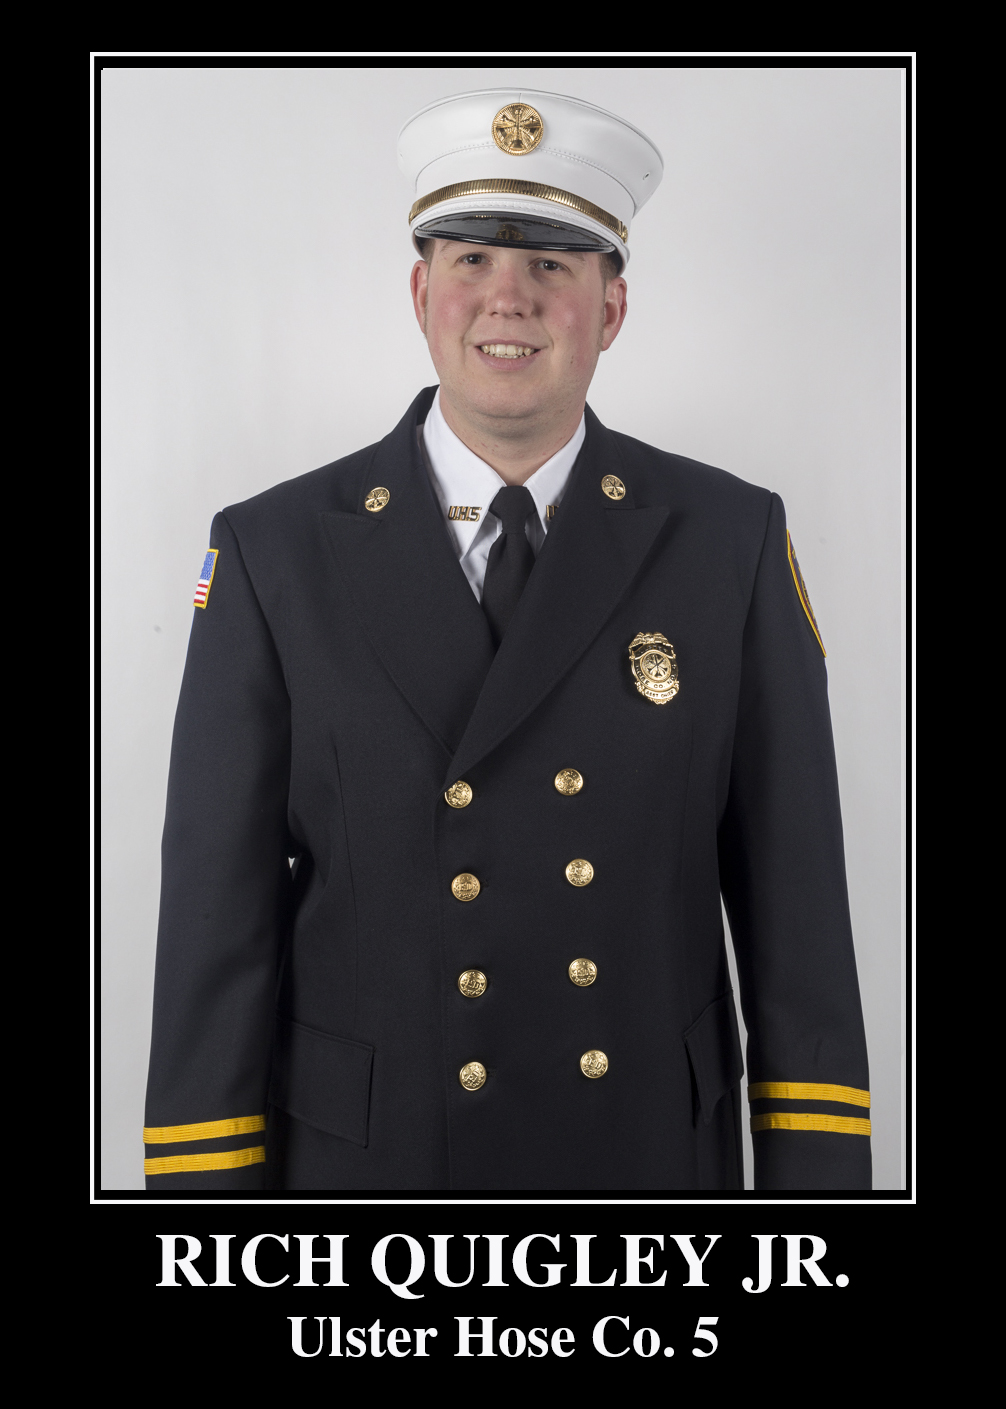 Asst. Chief Rich Quigley, Jr.